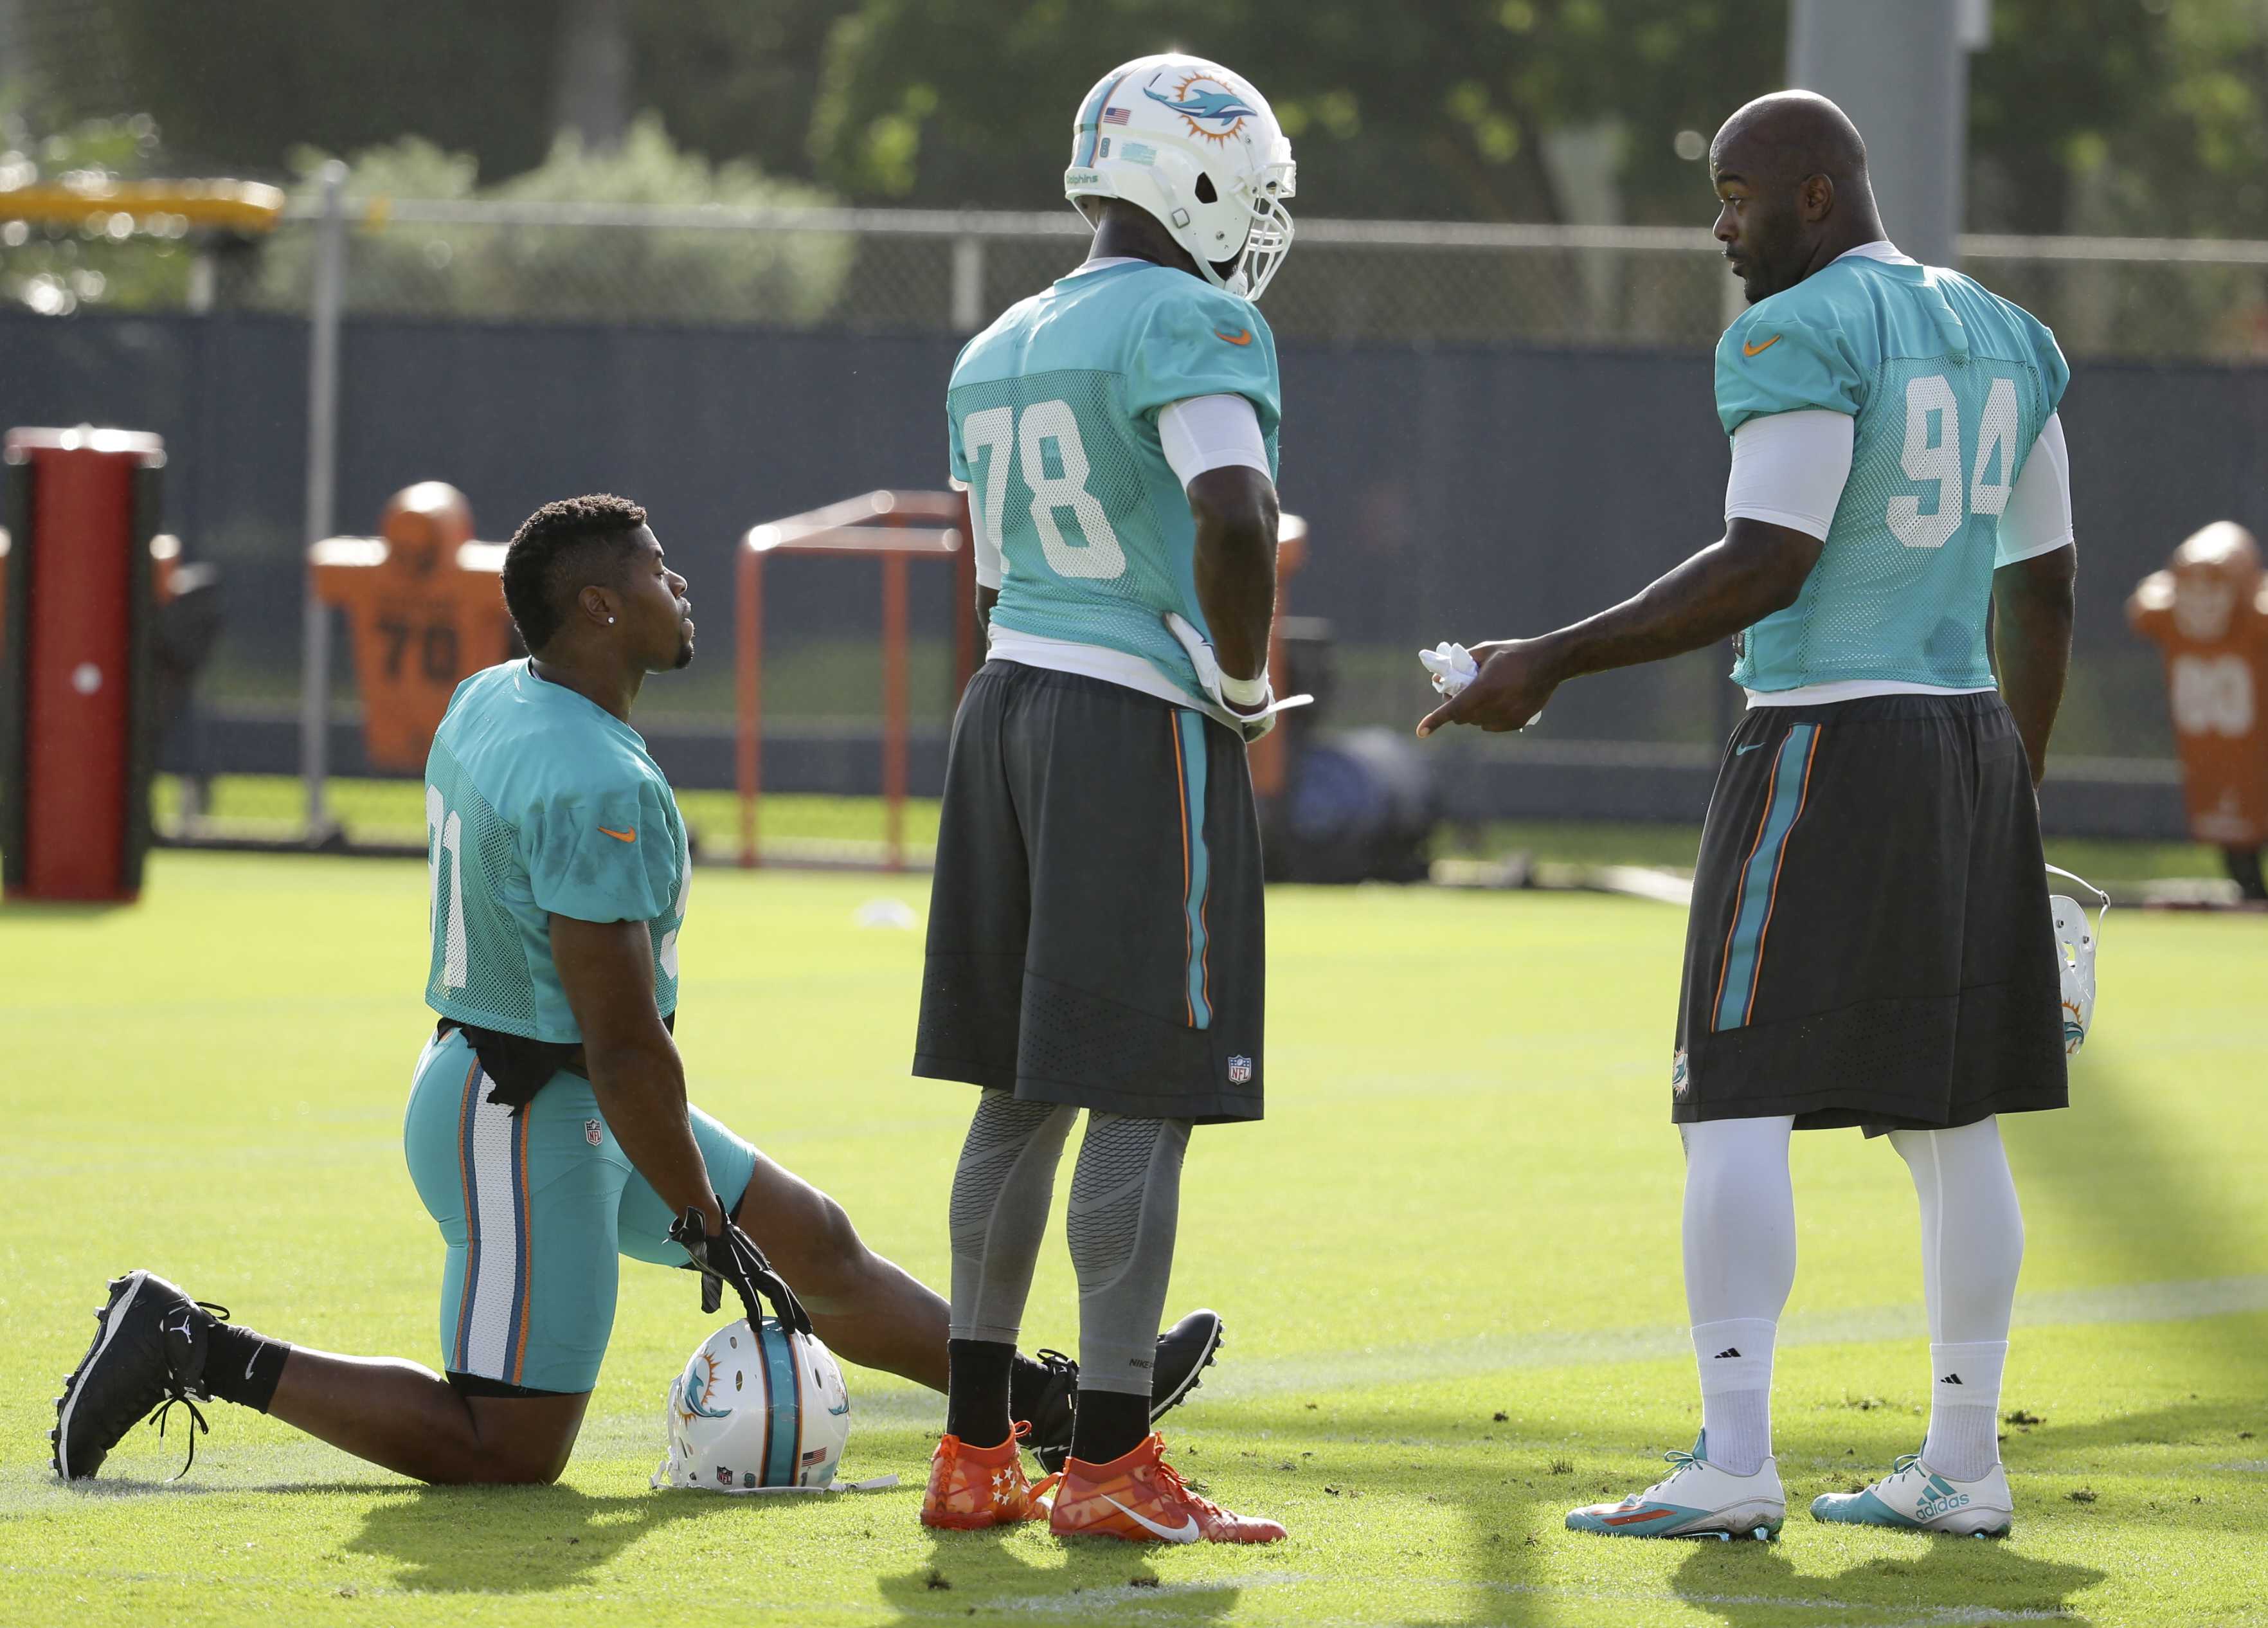 Miami Dolphins defensive end Cameron Wake, left, defensive end Terrence Fede (78) and defensive end Mario Williams (94) talk on the field Thursday, Aug. 4, 2016, during practice at NFL football training camp in Davie, Fla. (AP Photo/Lynne Sladky)